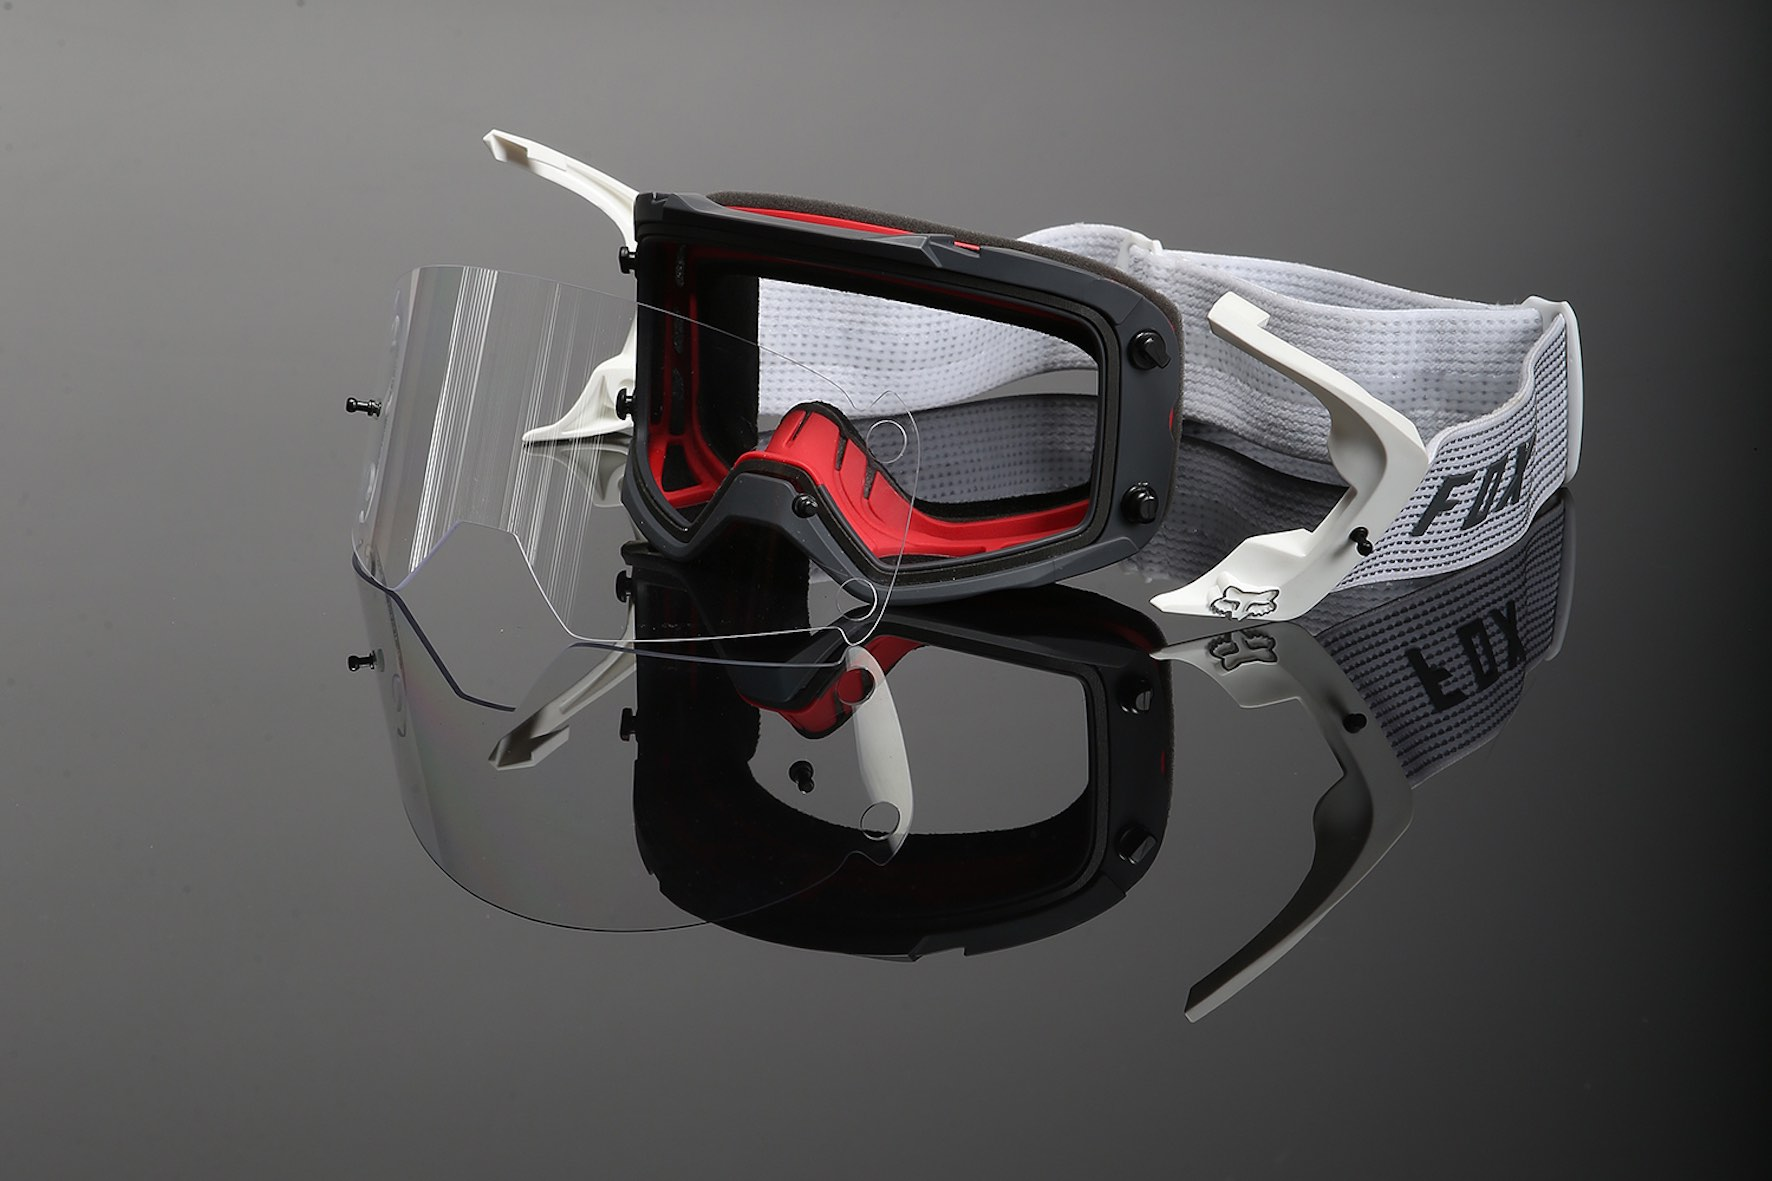 A view of the Fox Vue Goggle TruLock system